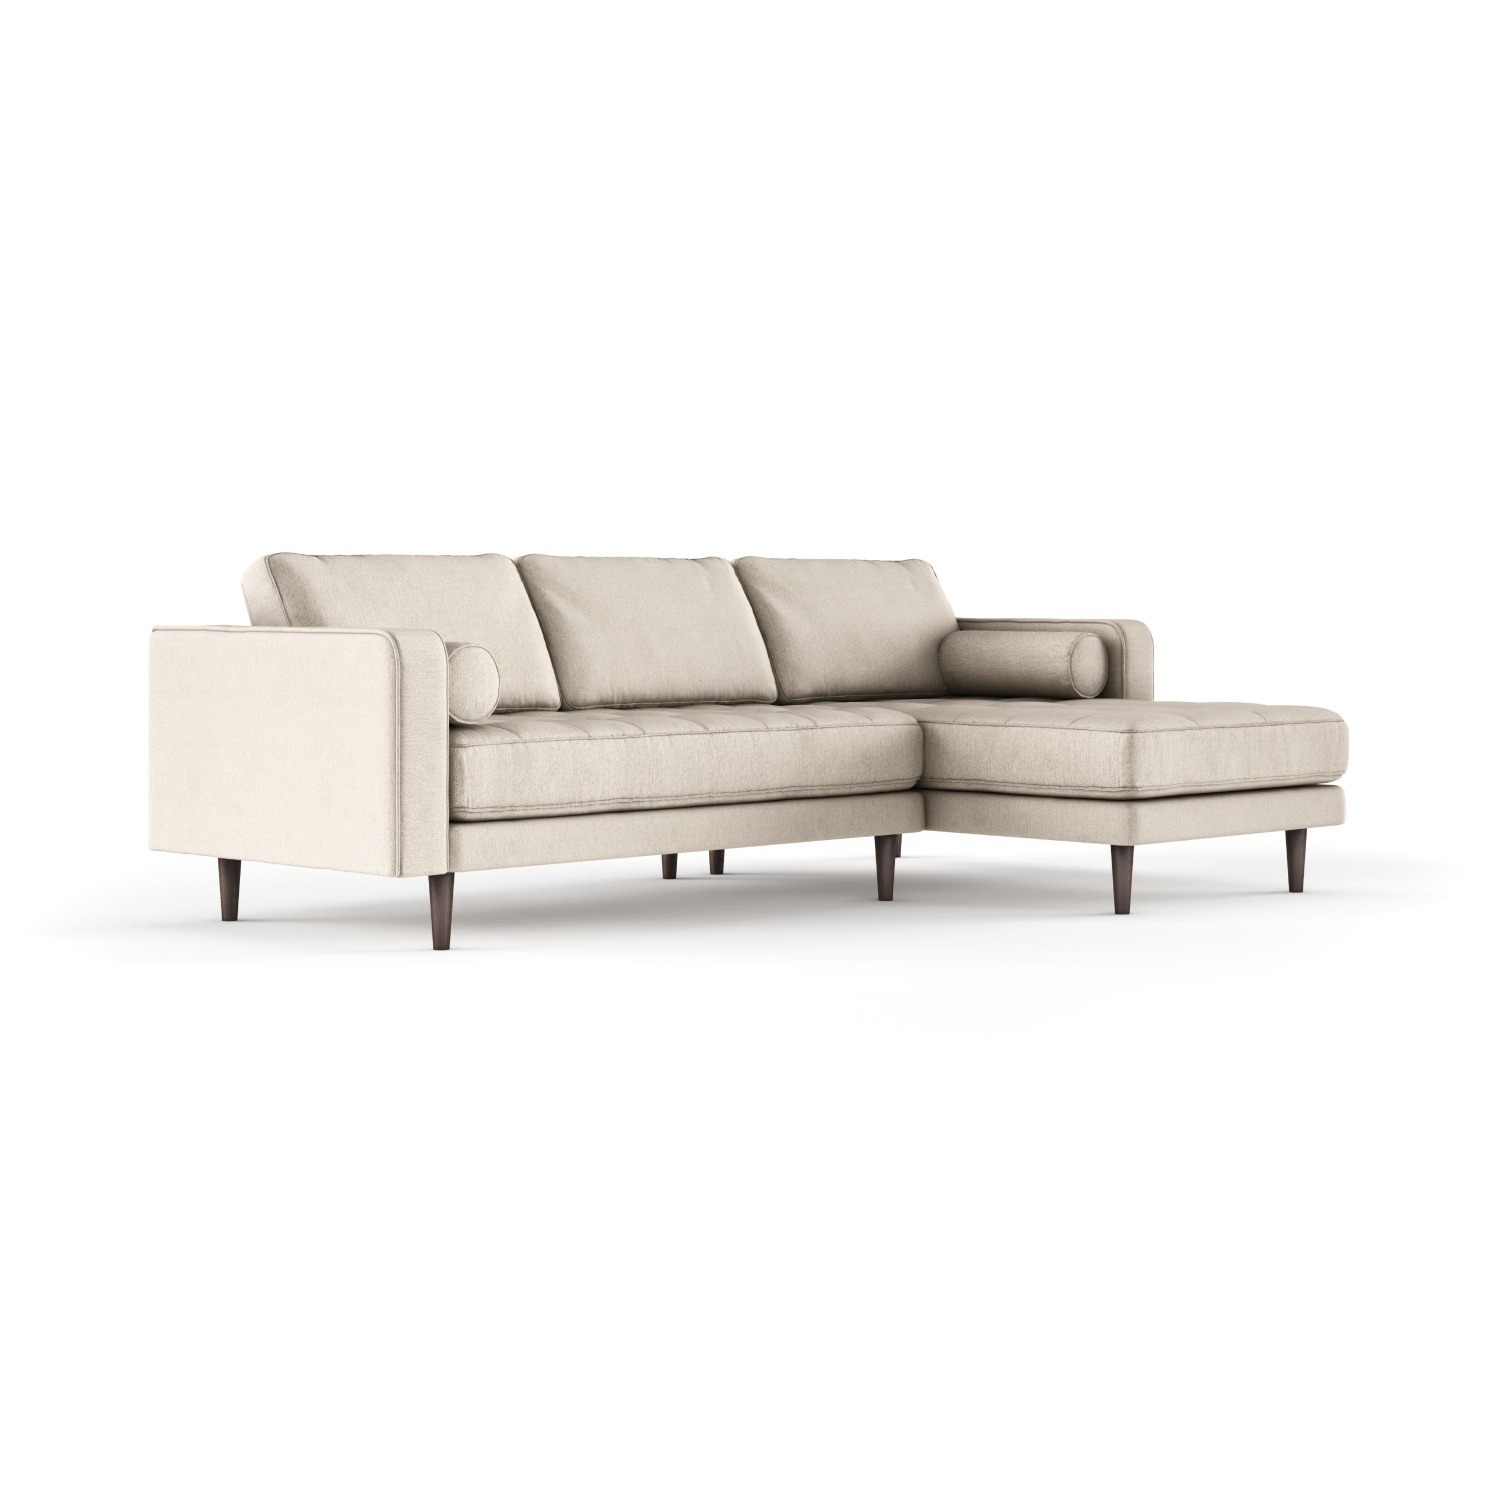 Oliver Space Breuer - Right Chaise - image-4